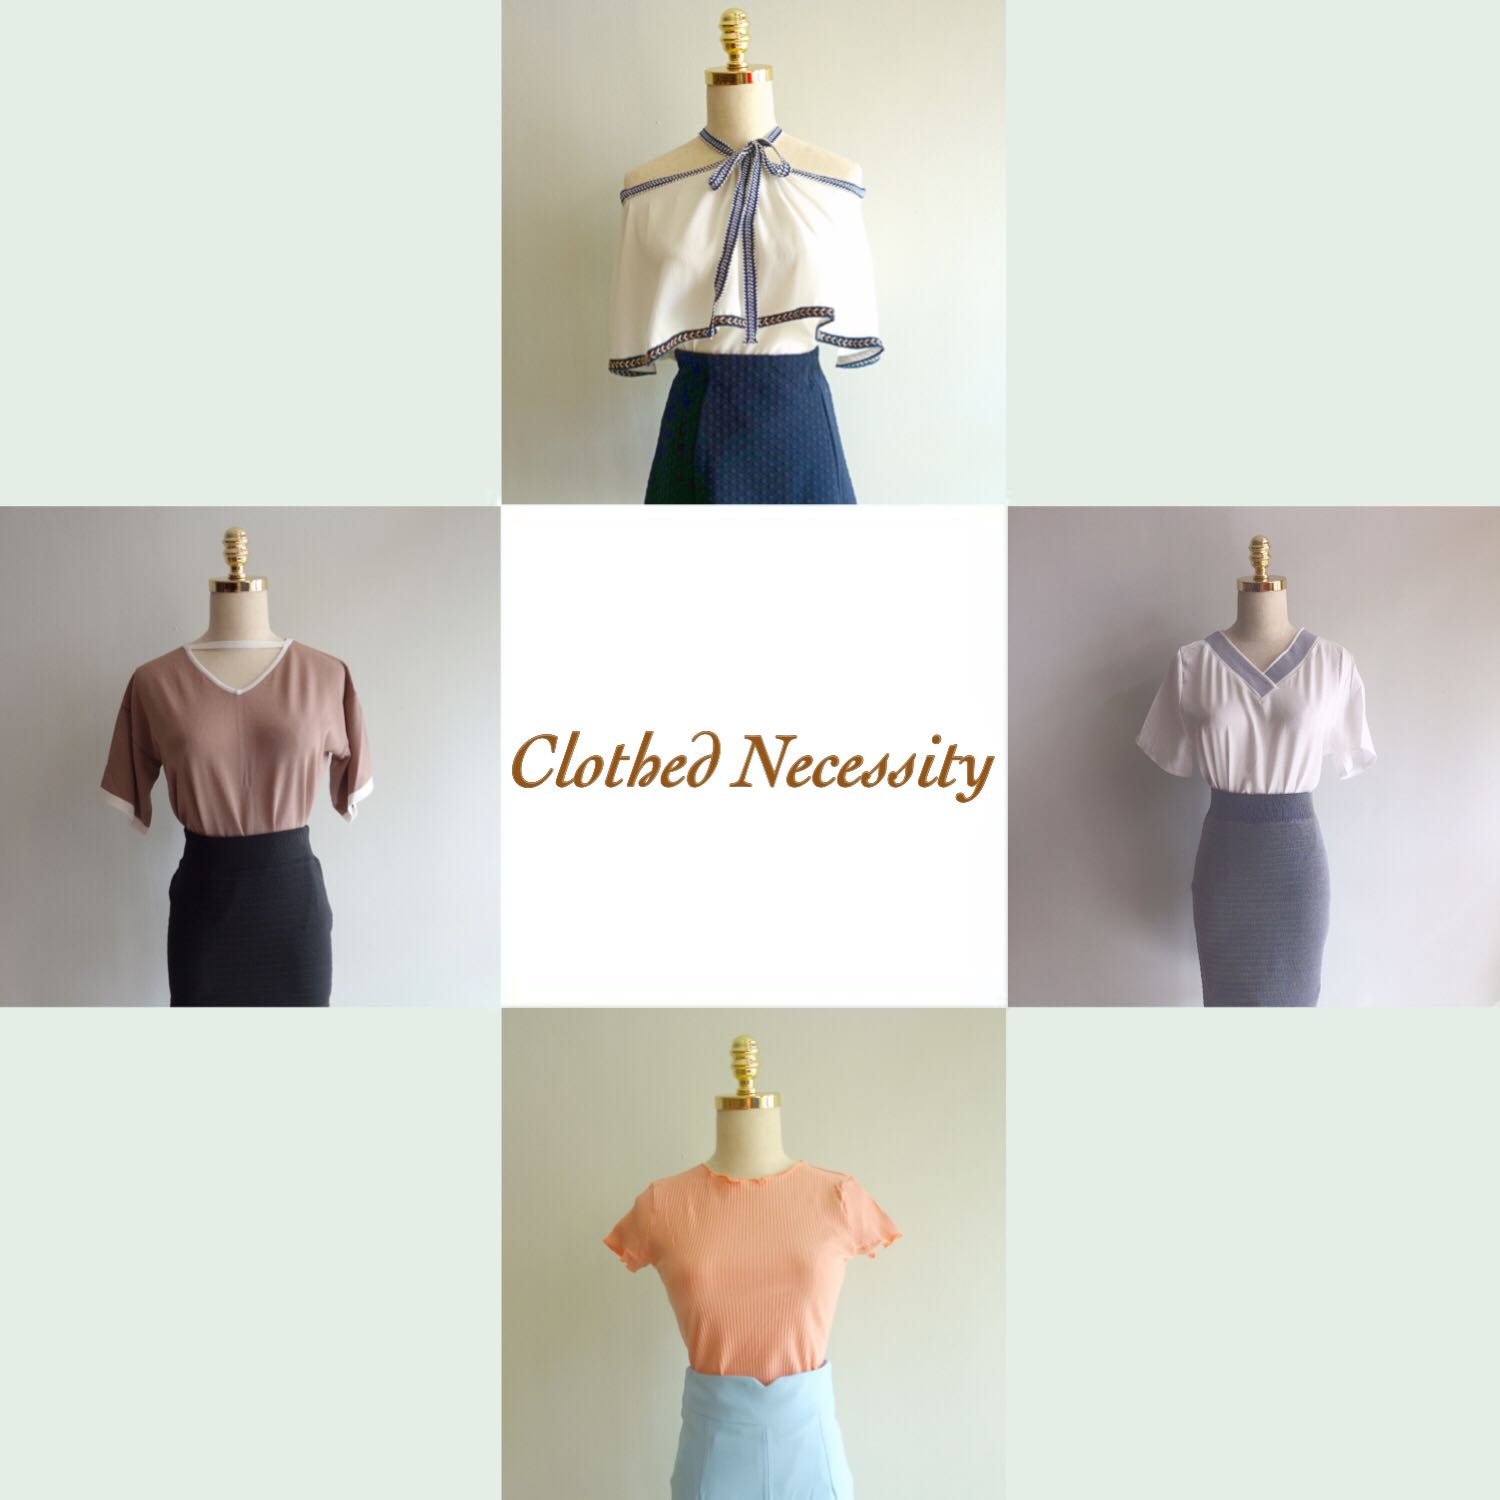 clothed_necessity